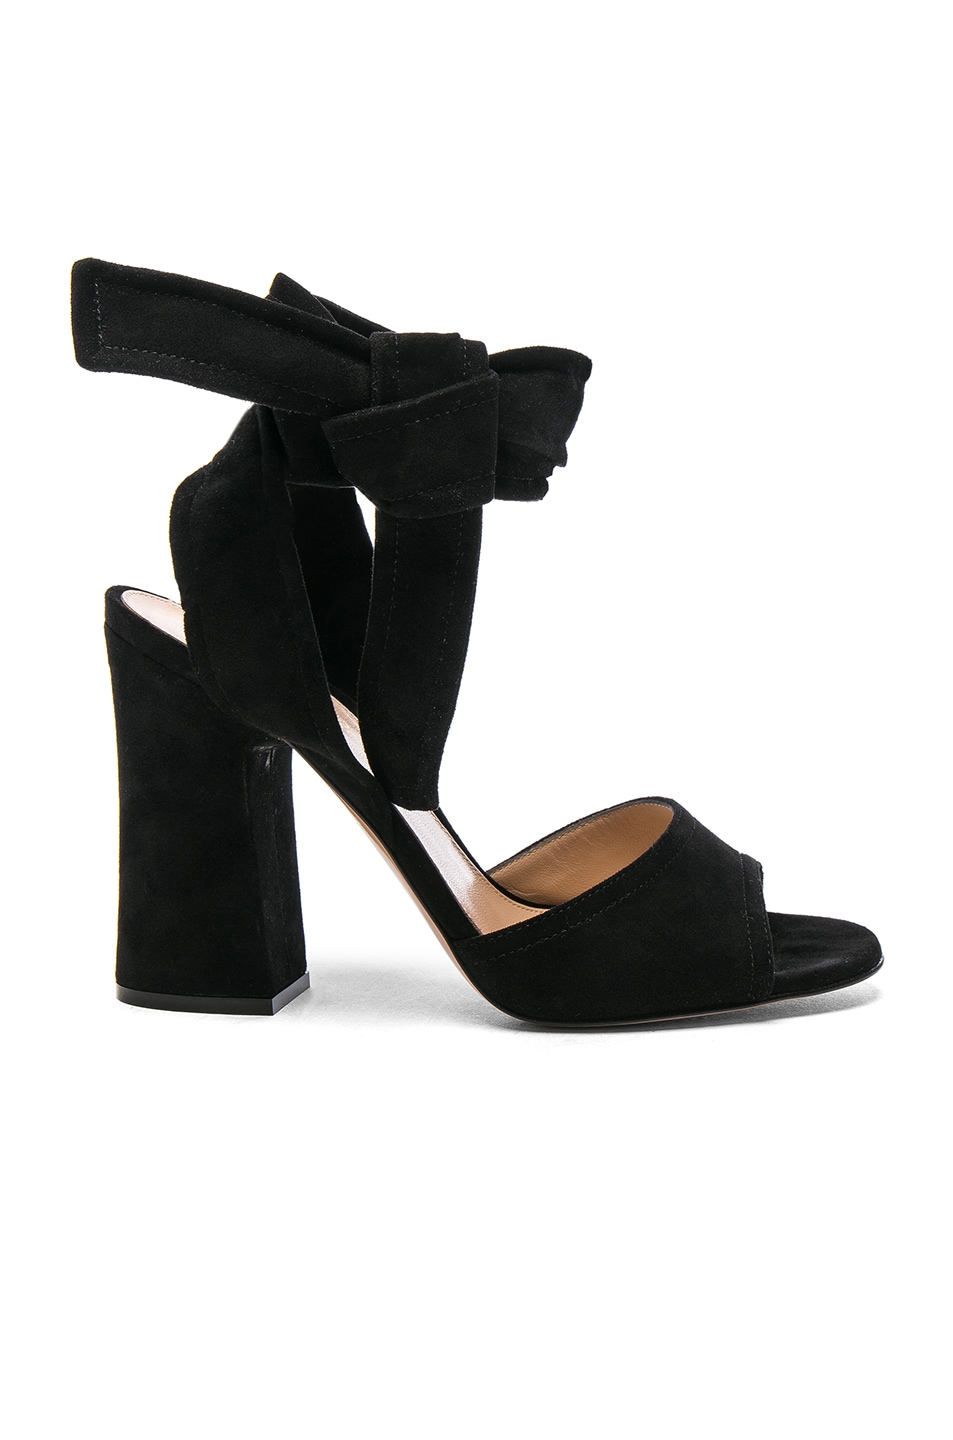 Image 1 of Gianvito Rossi Suede Ankle Tie Heels in Black